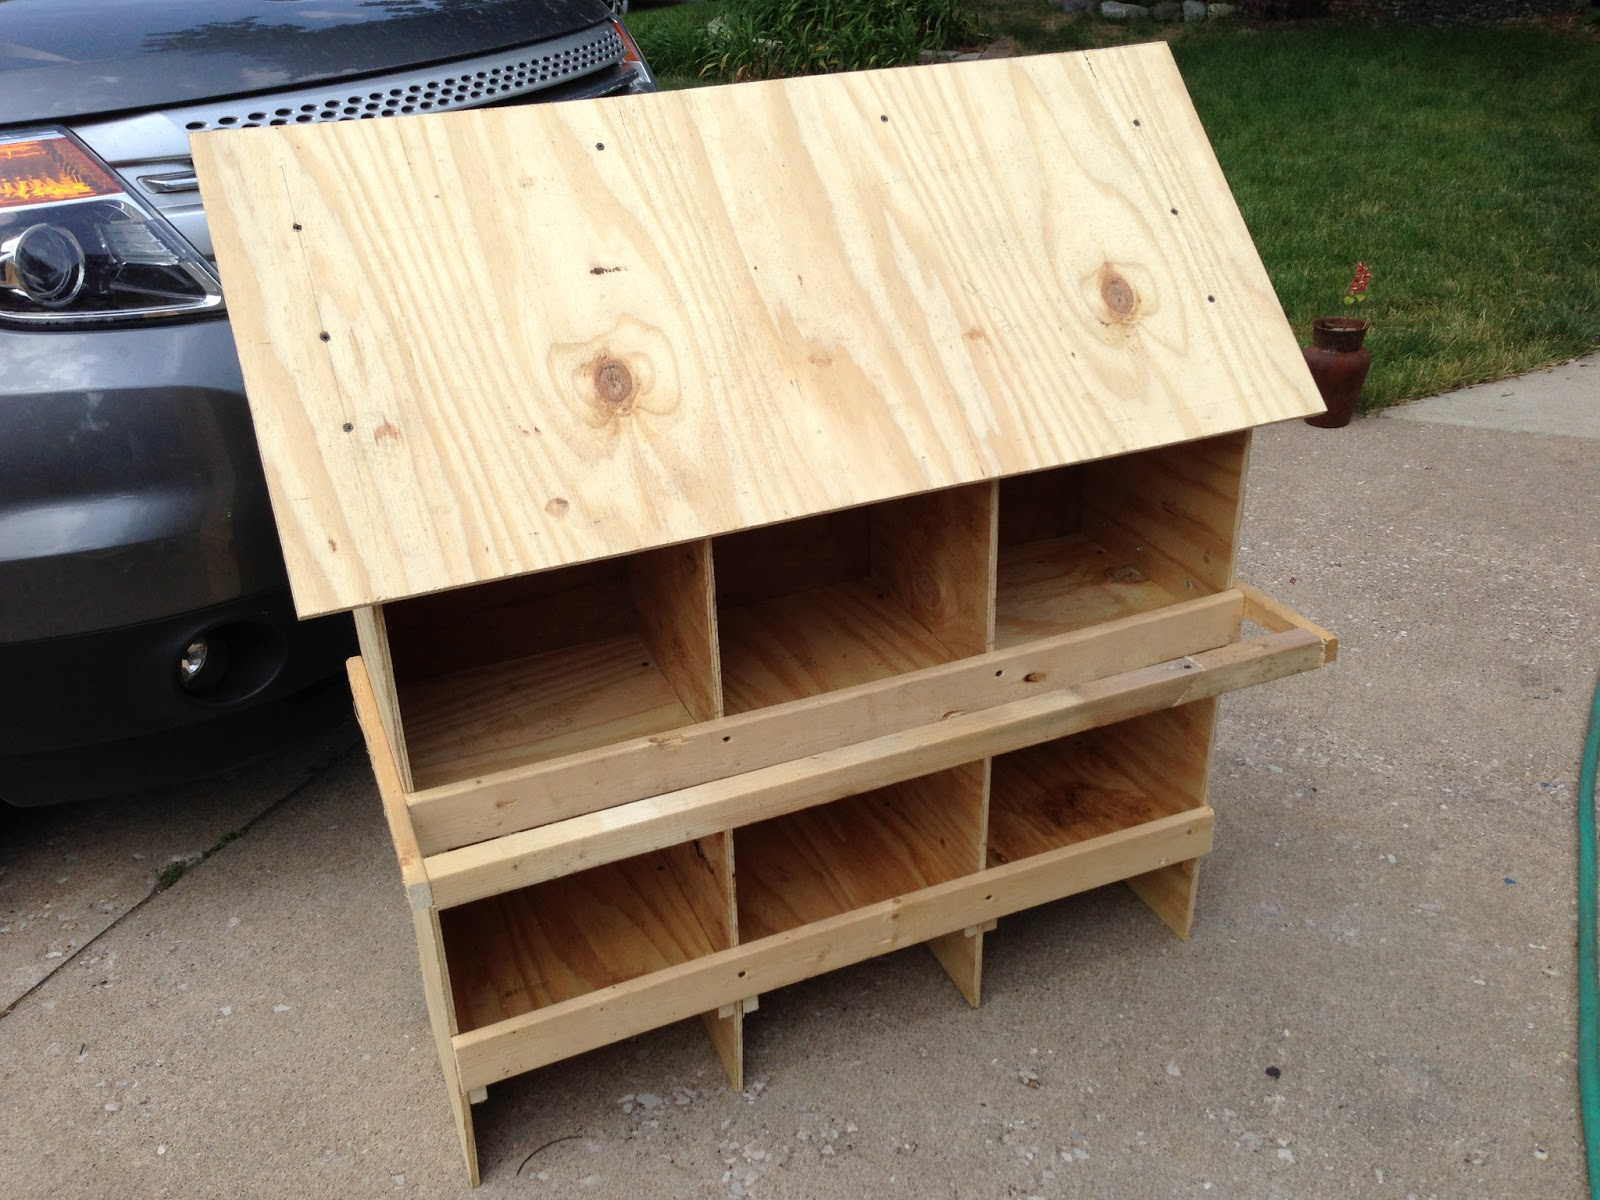 joes garden journal a low cost easy to build chicken